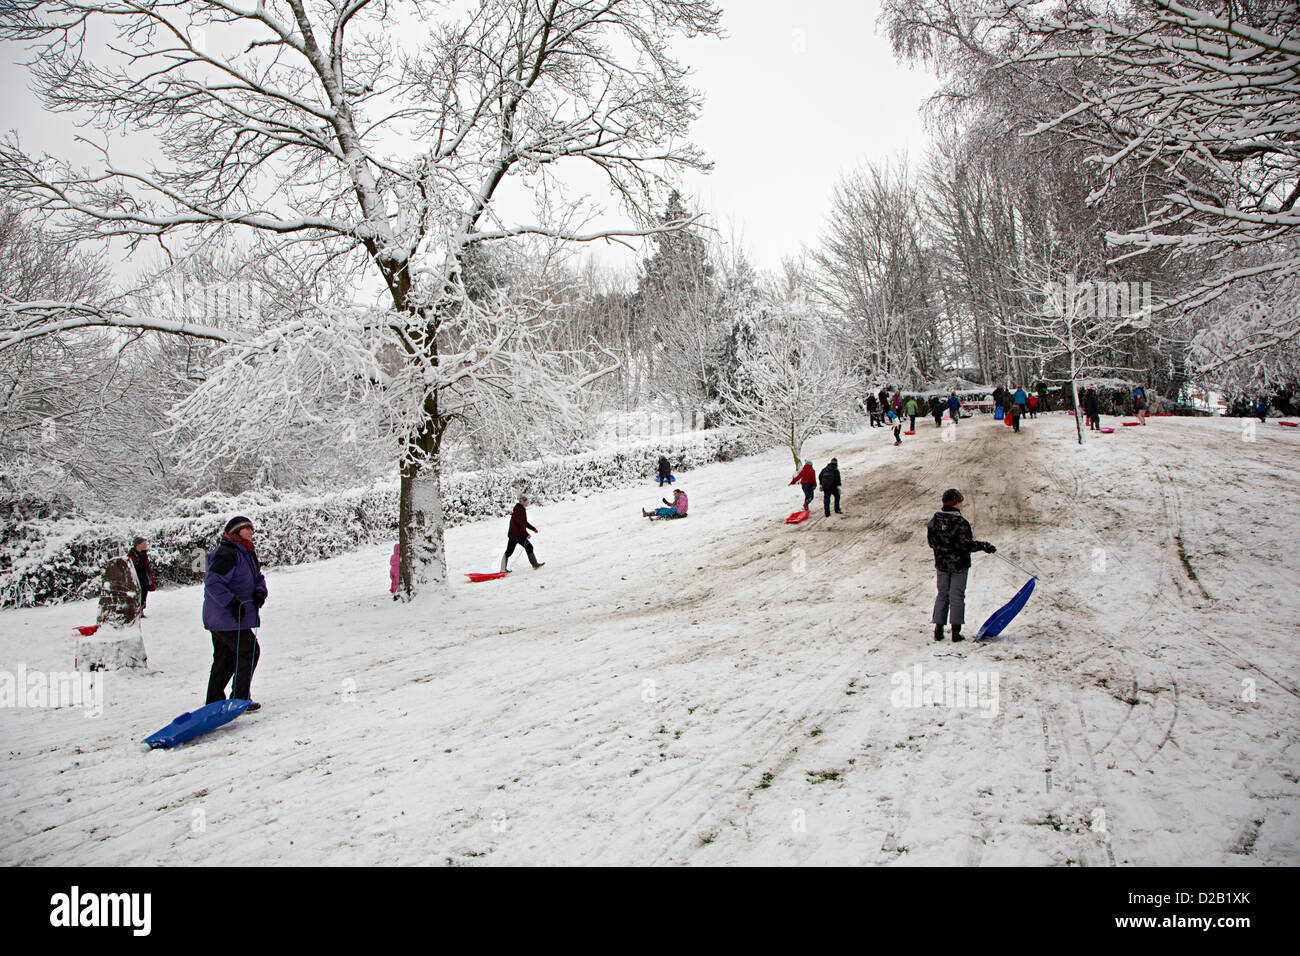 Children and adults sledging in public park Sophia Gardens, Abergavenny, Wales, UK - Stock Image